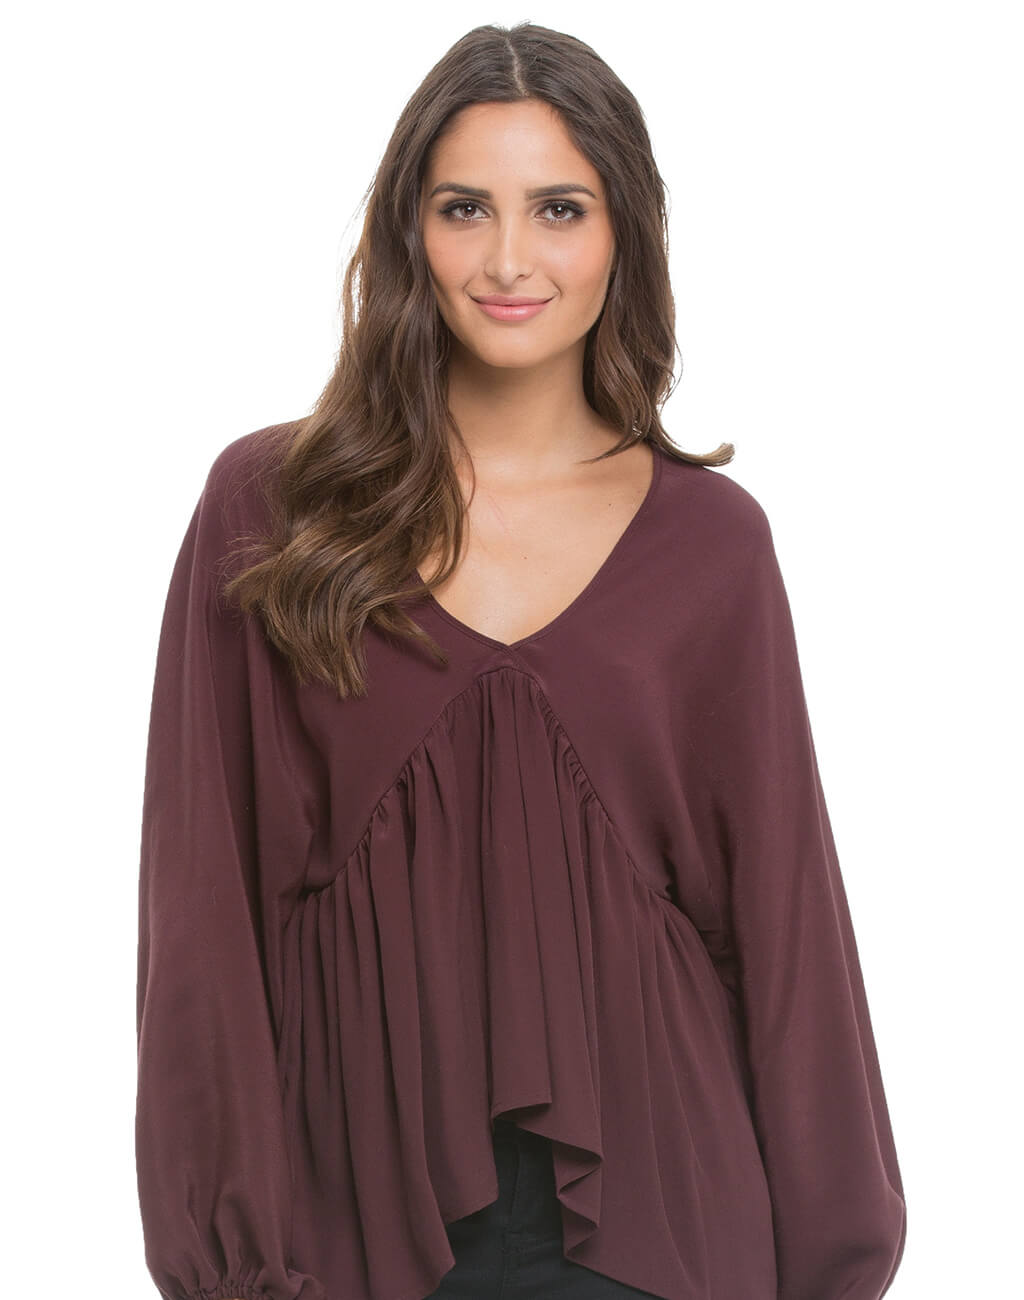 Ladies : Long Sleave Top Brown